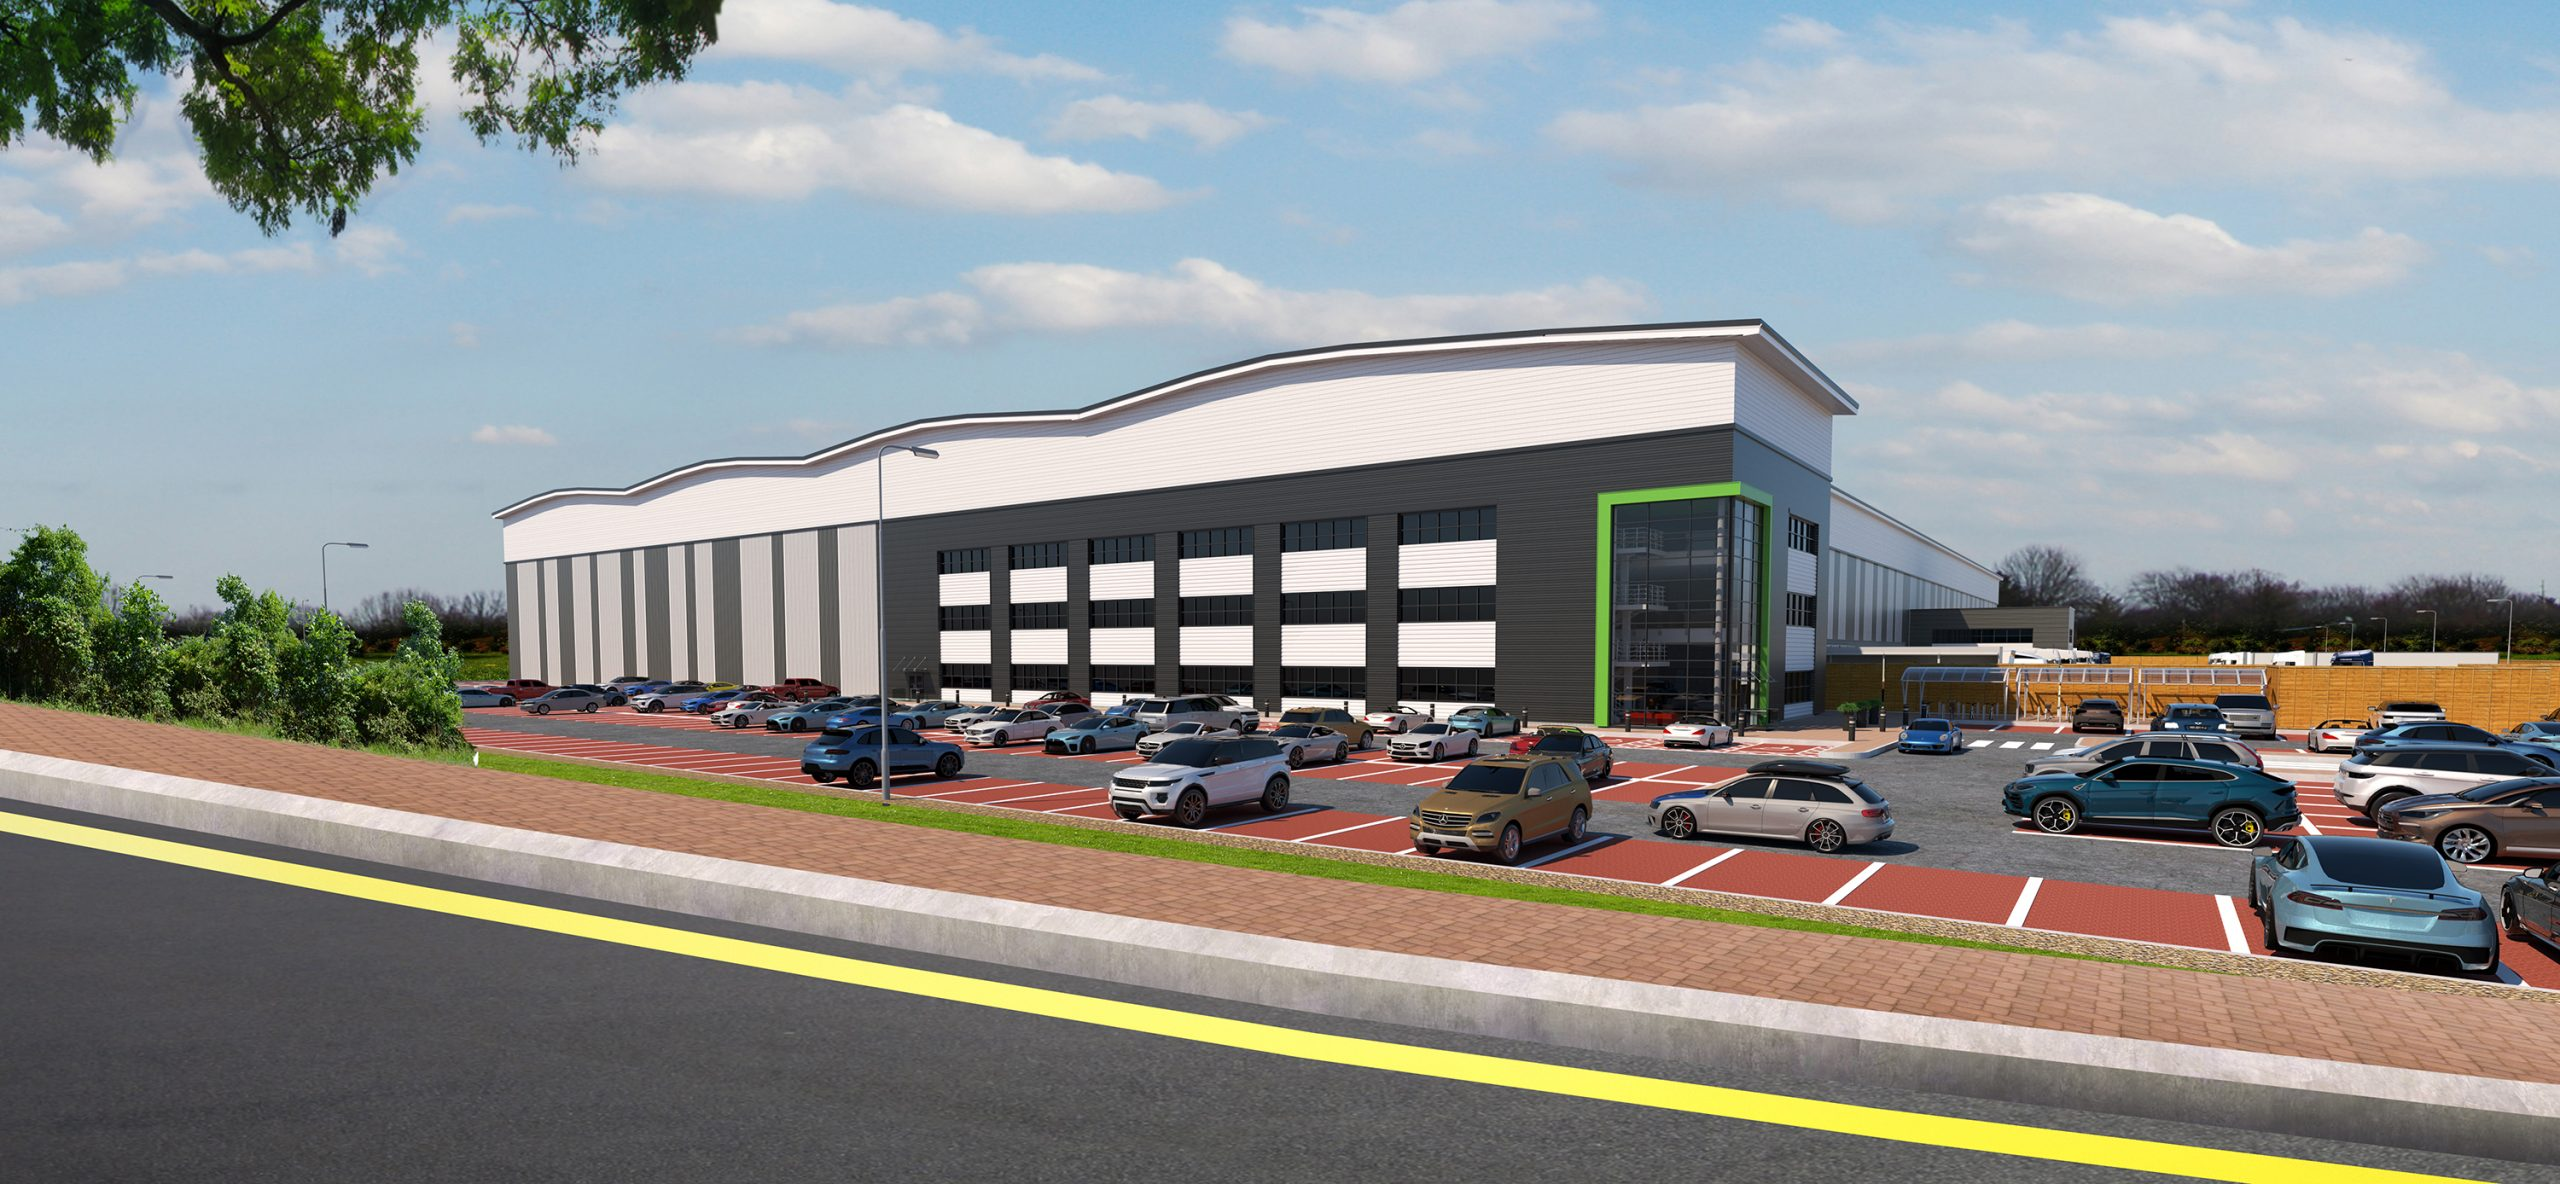 Goodman given green light for M25 340,000 sq ft prime e-commerce and deliveries site